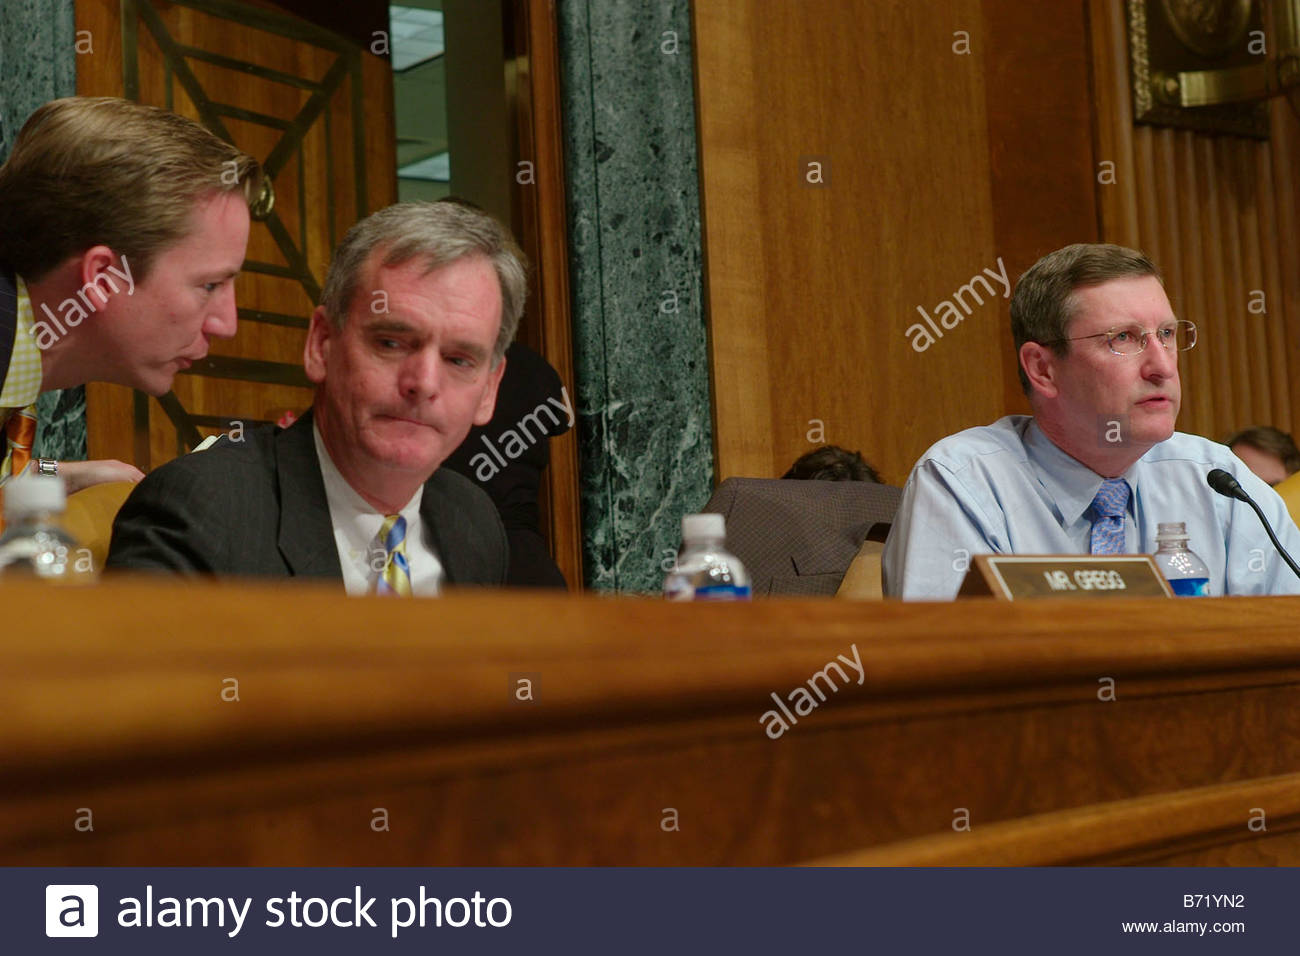 06 21 07 Senate Budget ranking member Judd Gregg R N H and Chairman Kent Conrad D N D during the hearing on the - Stock Image